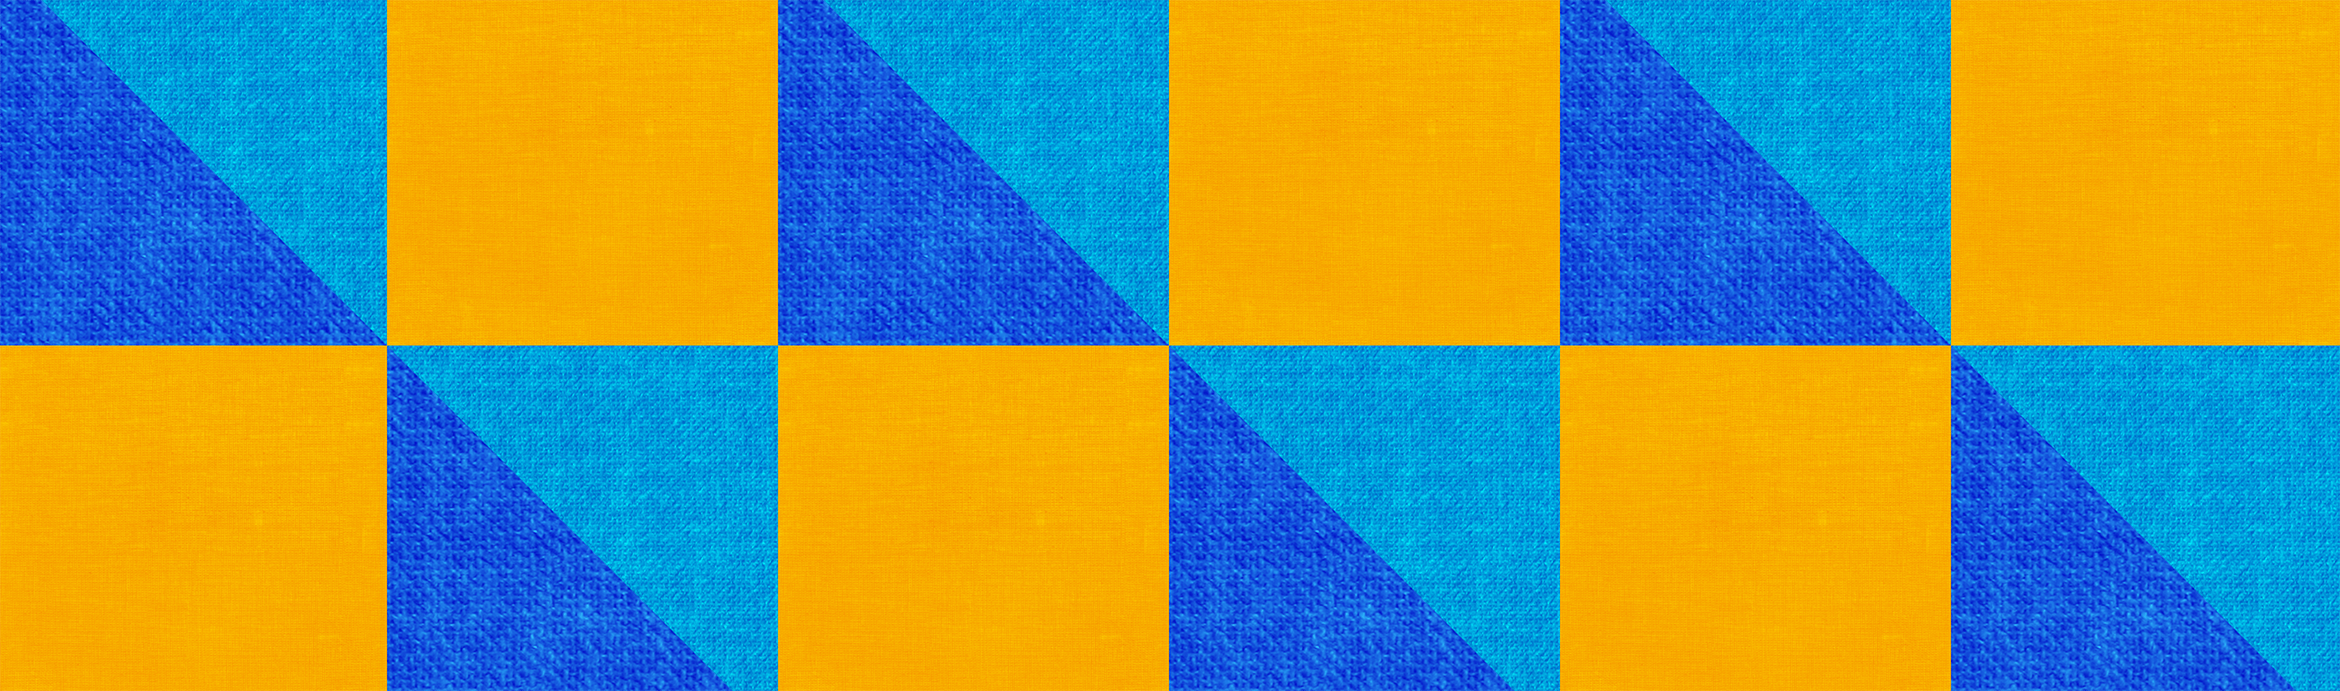 blue and yellow pattern